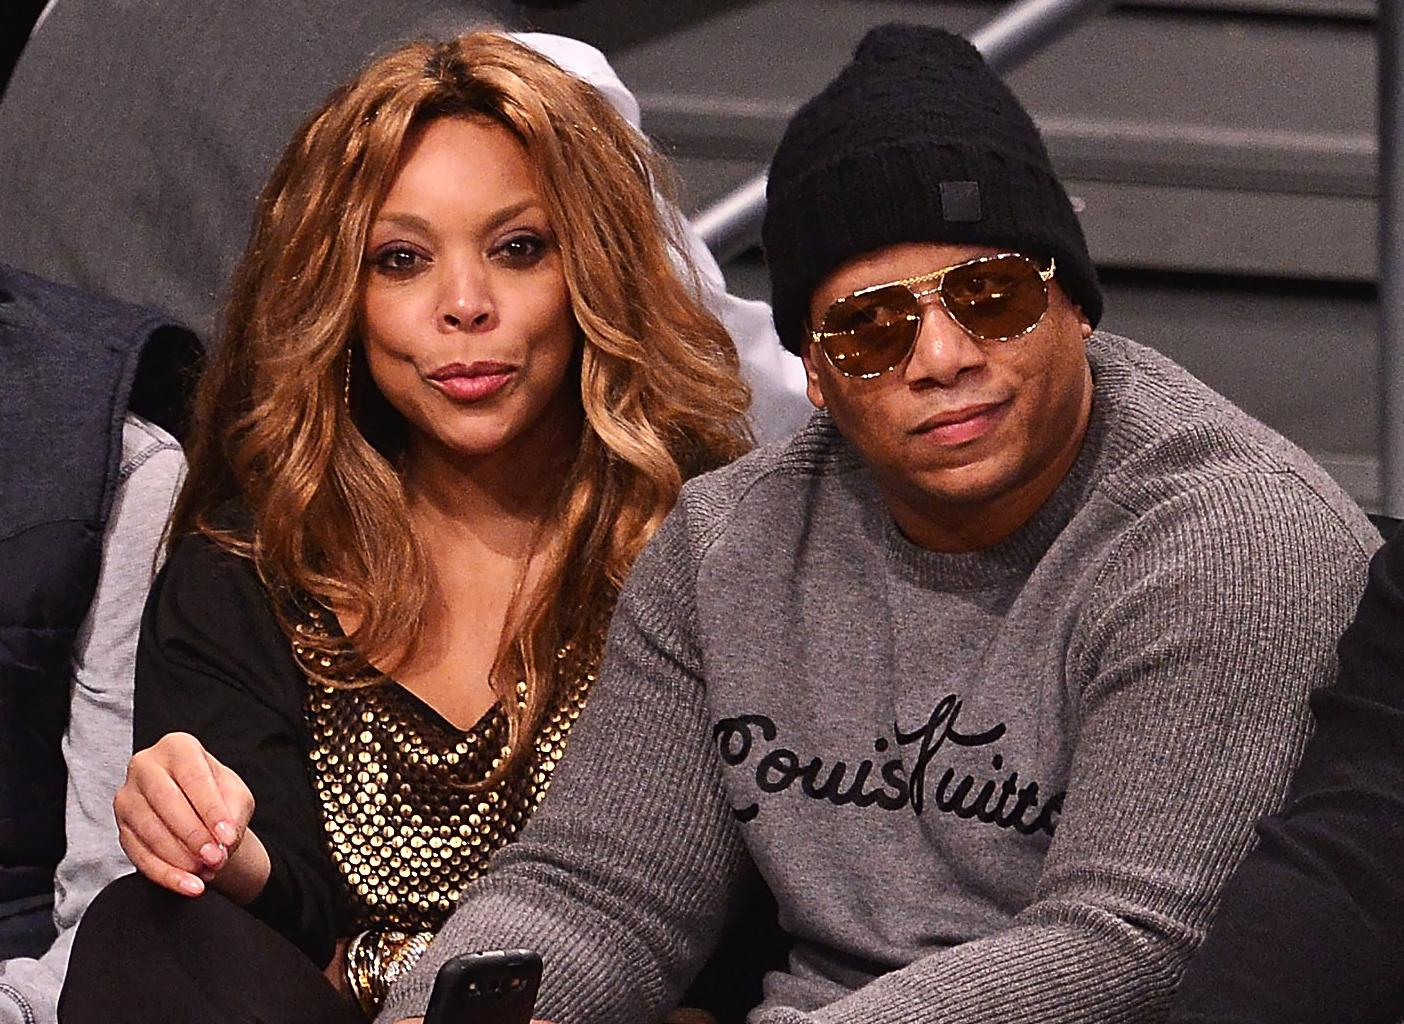 Wendy Williams Addresses Those Rumors She's Joining RHONY And Shades Ex-Husband Kevin Hunter!